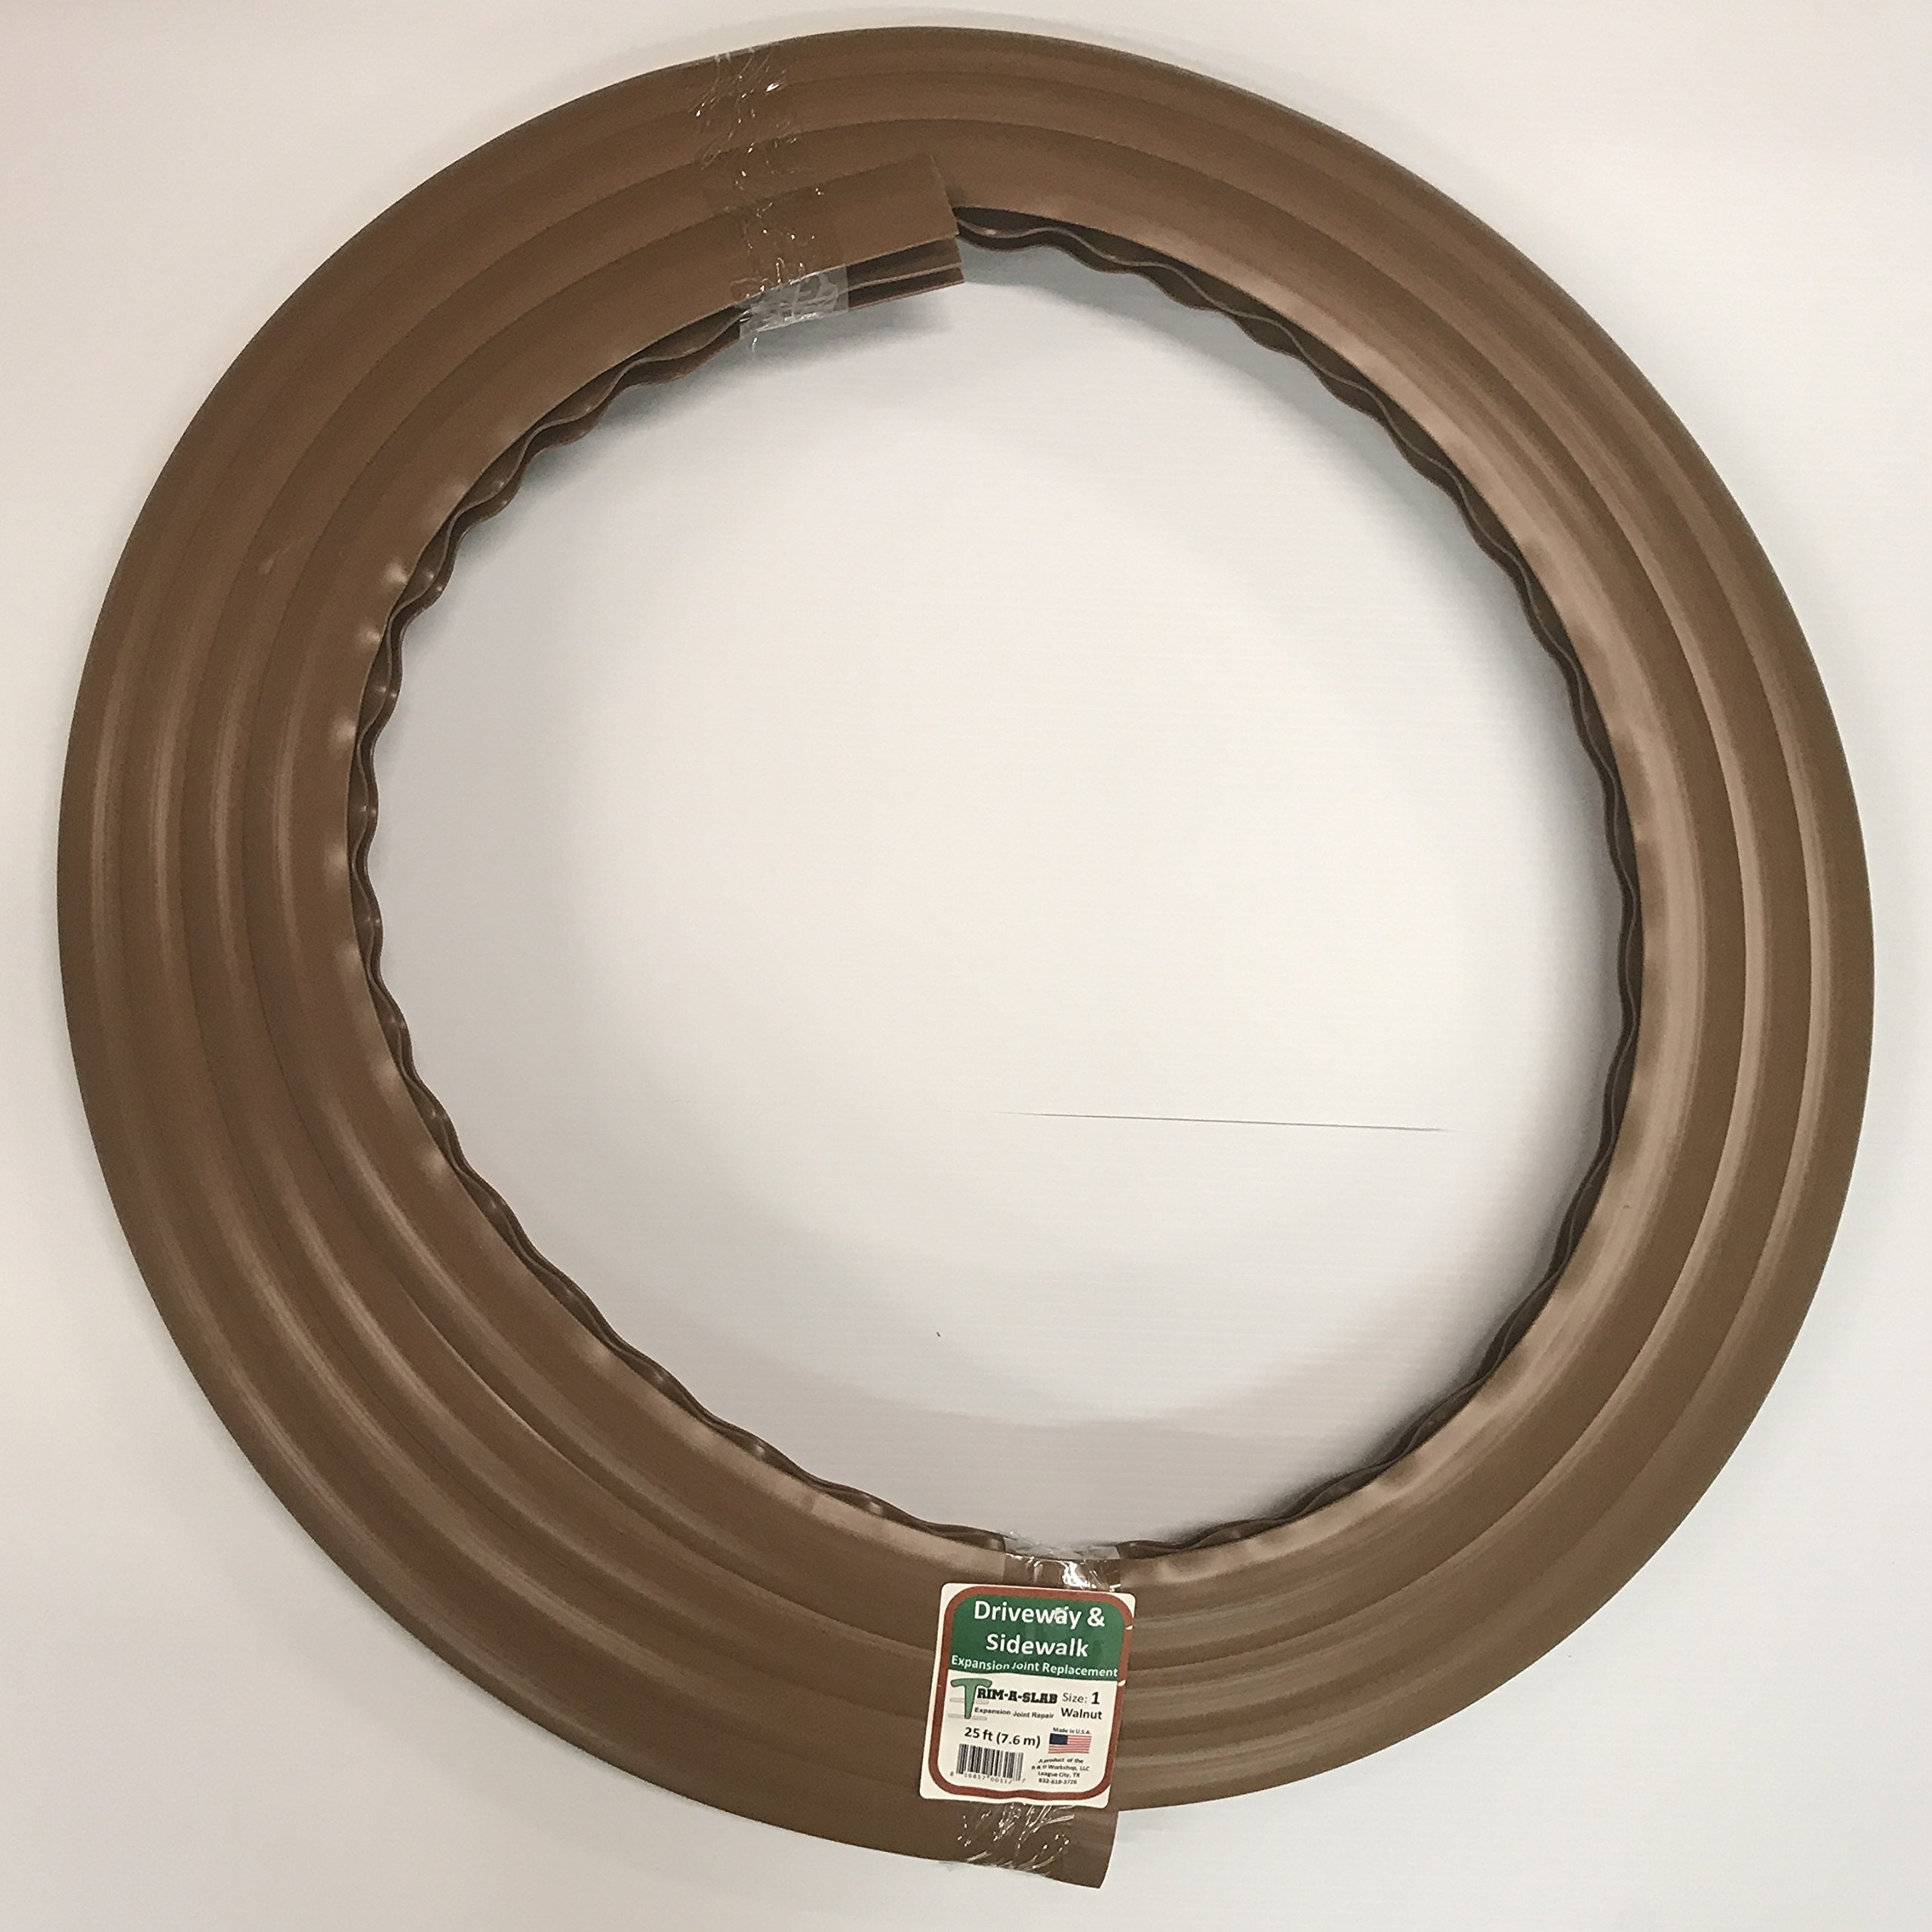 Trim-A-Slab (Walnut) Expansion Joint Repair/Replace Material - 1 3/8'' x 25 linear feet (7.6m)